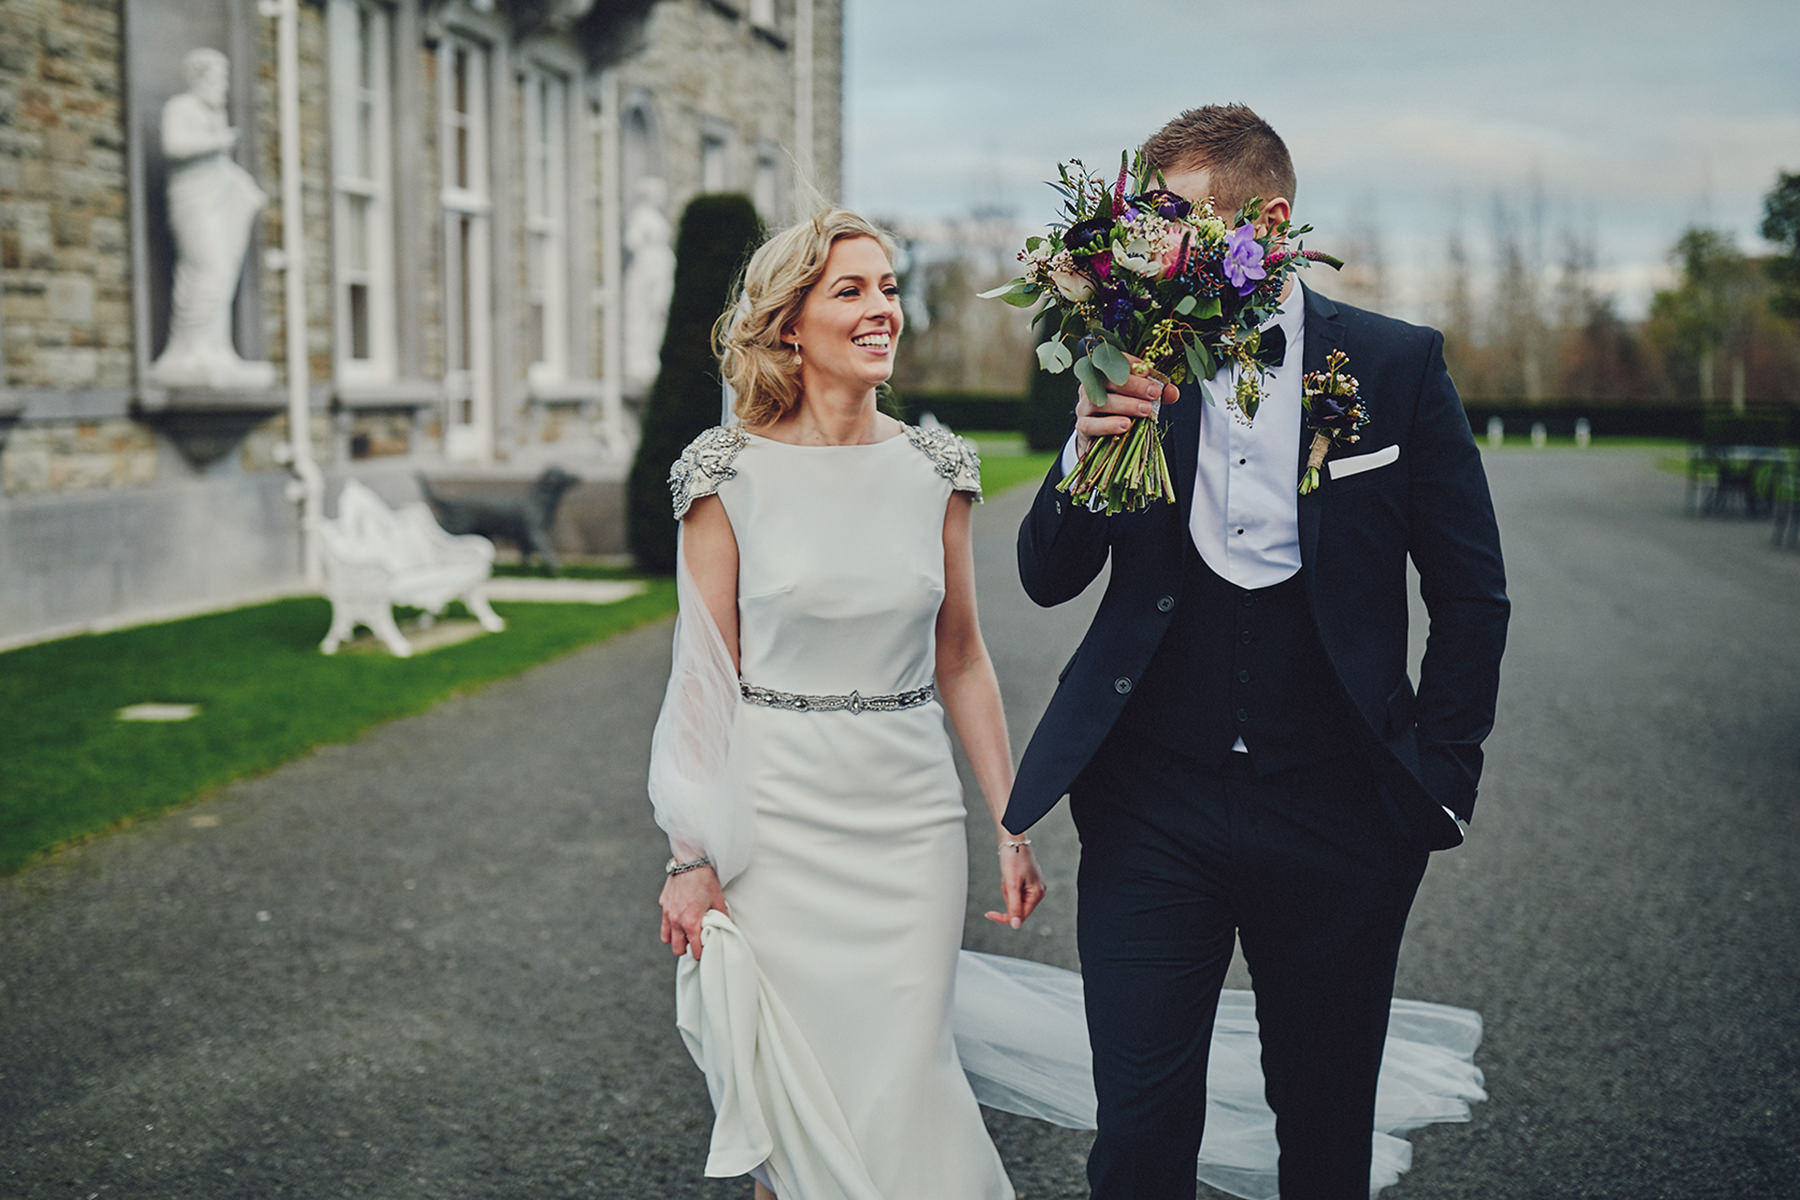 Perfcet Wedding Venue Dublin Palmerstown Estate037 - Perfect Wedding Venue close to Dublin?